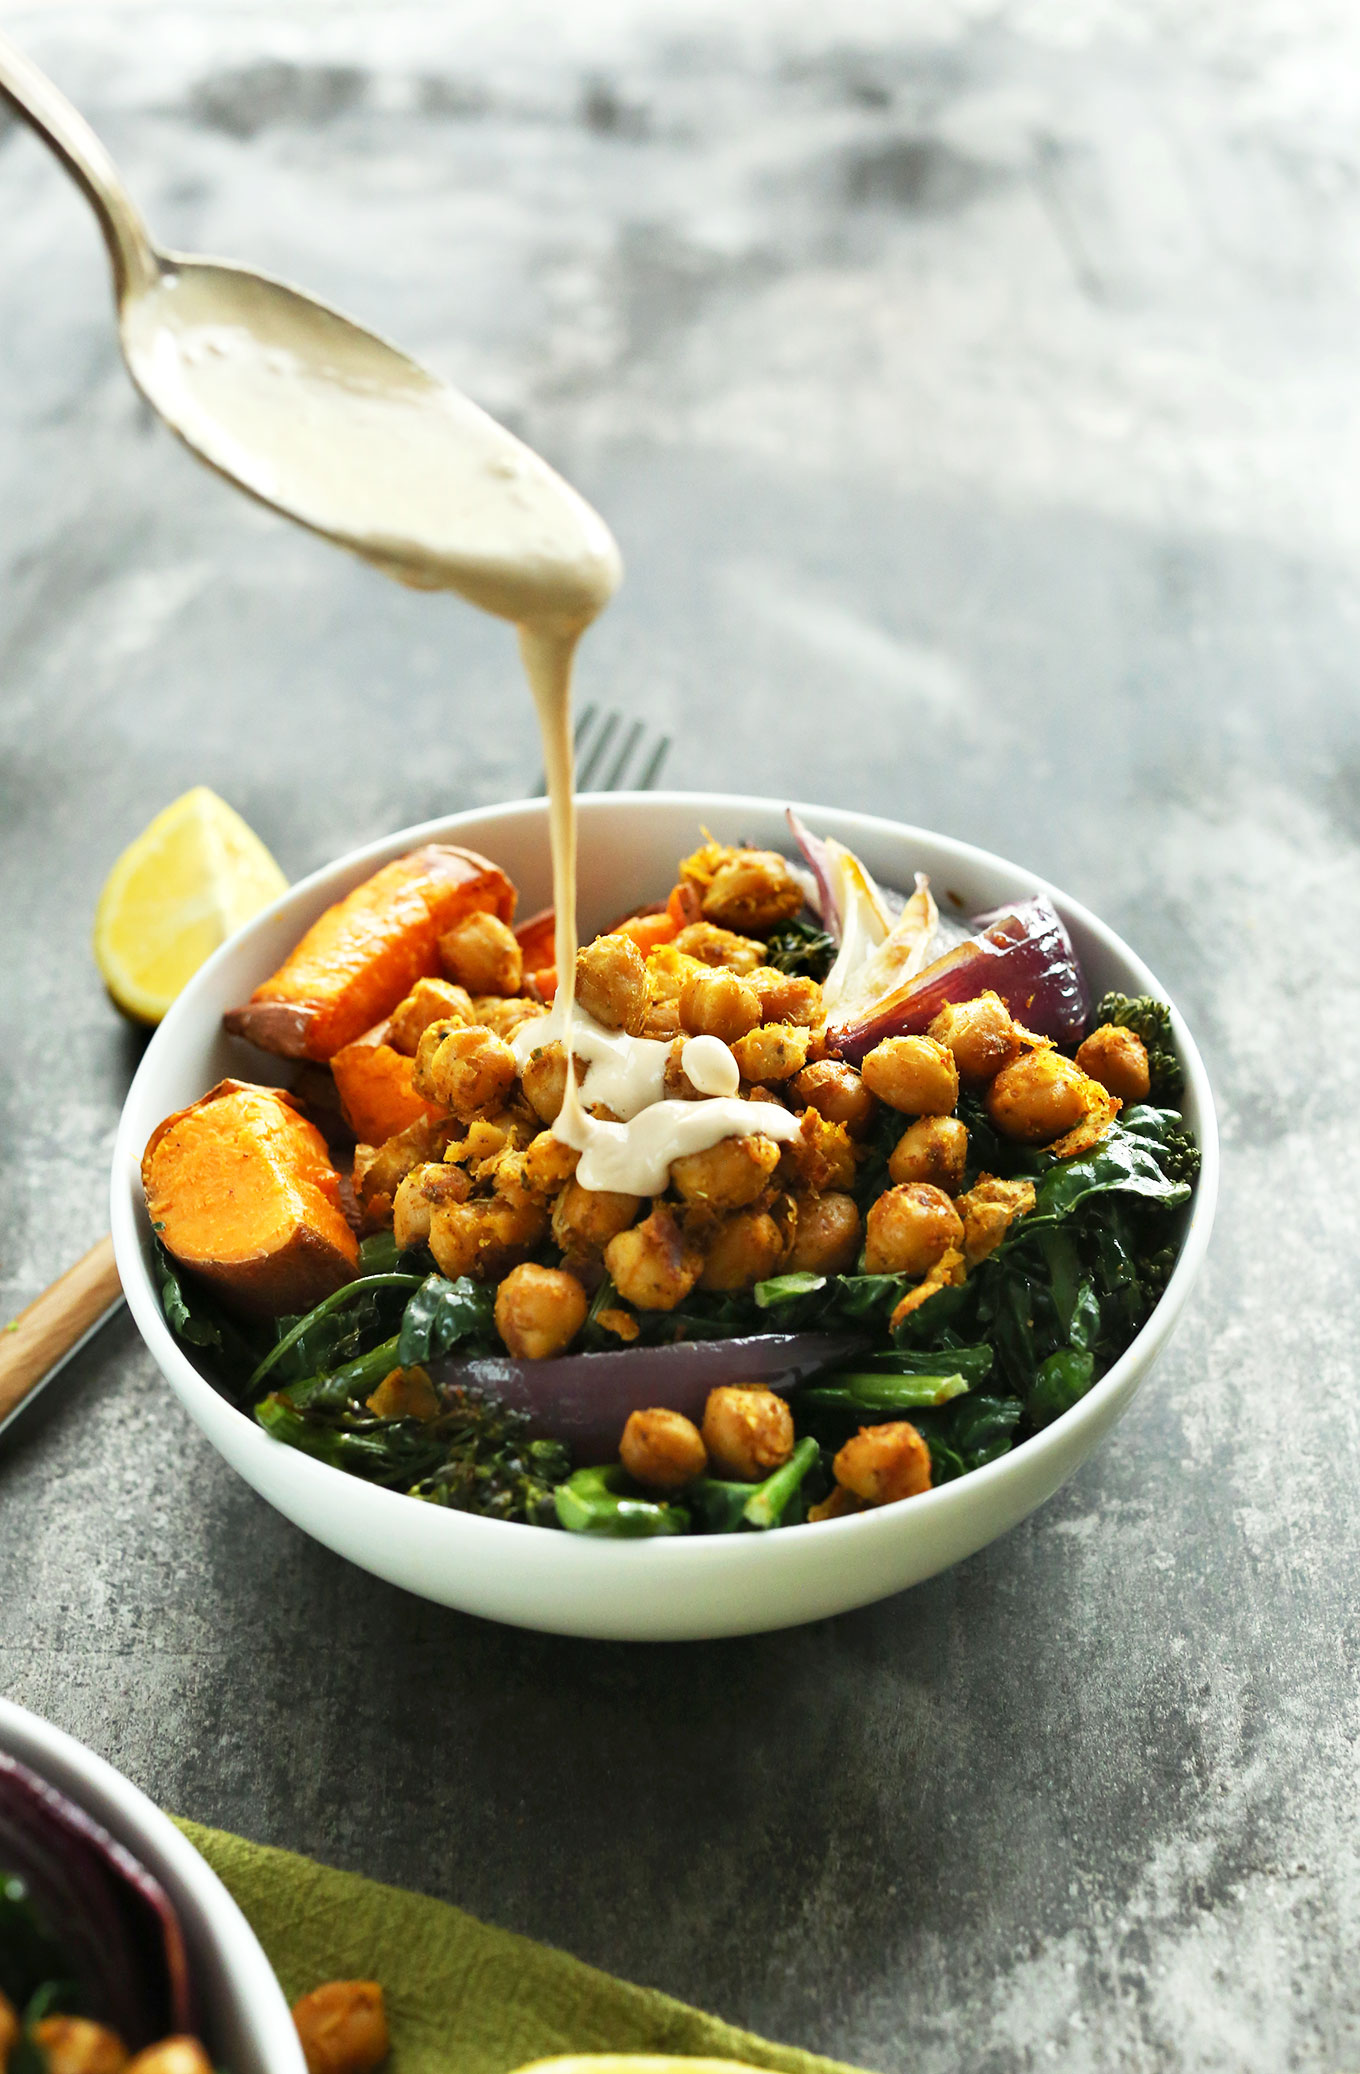 Pouring Tahini Maple Sauce onto a gluten-free vegan Sweet Potato Chickpea Buddha Bowl